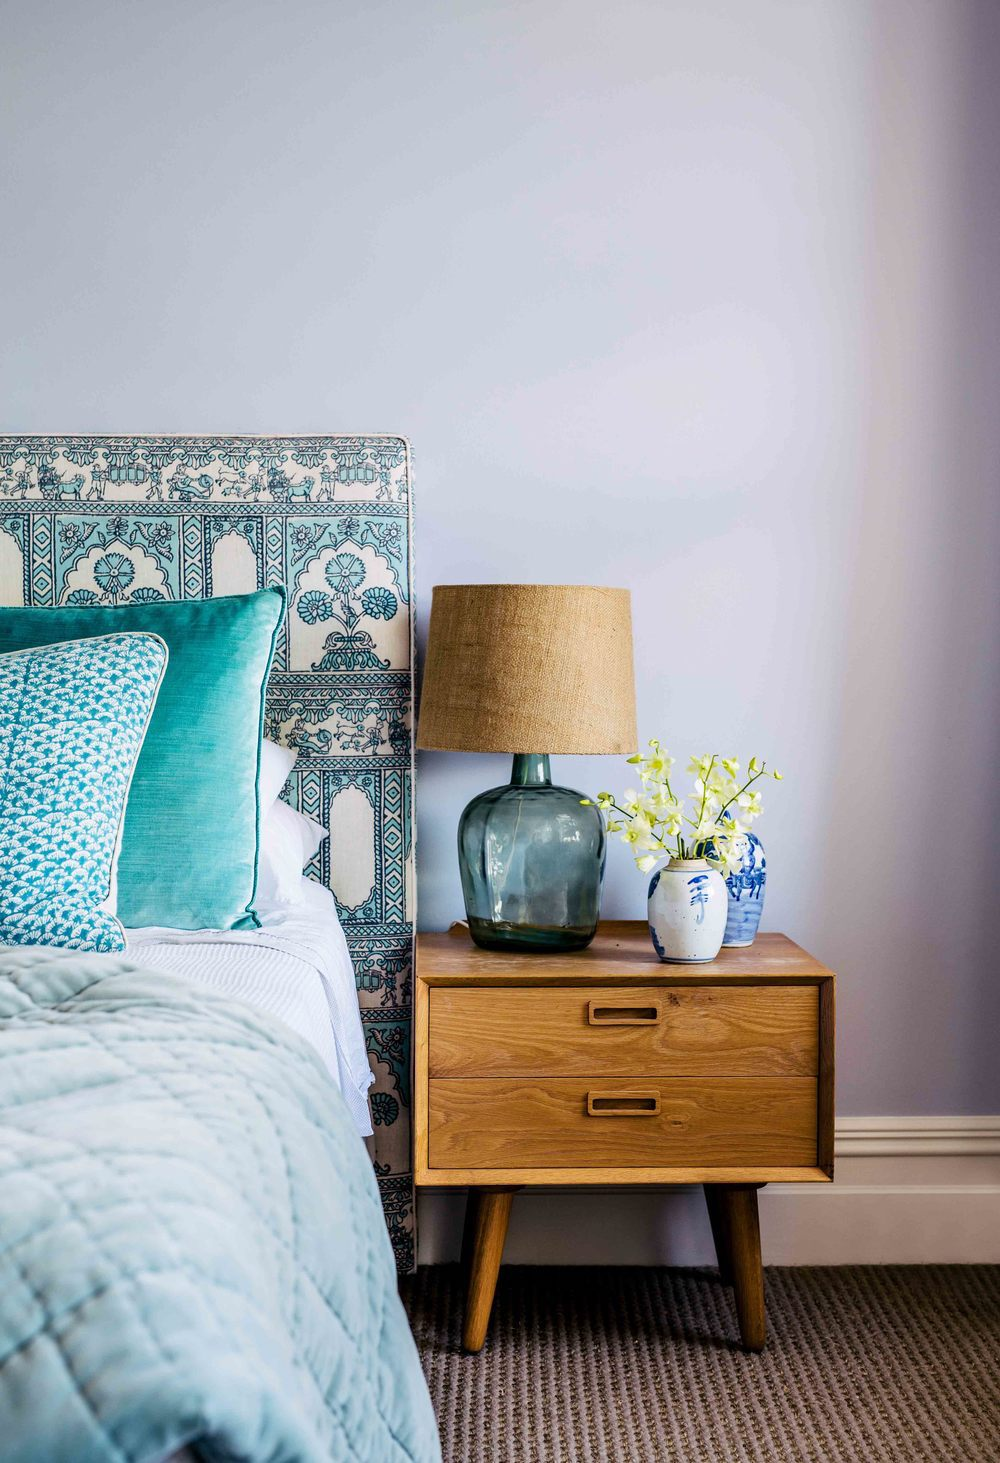 Bedroom with blue fabric headboard and mid-century nightstand